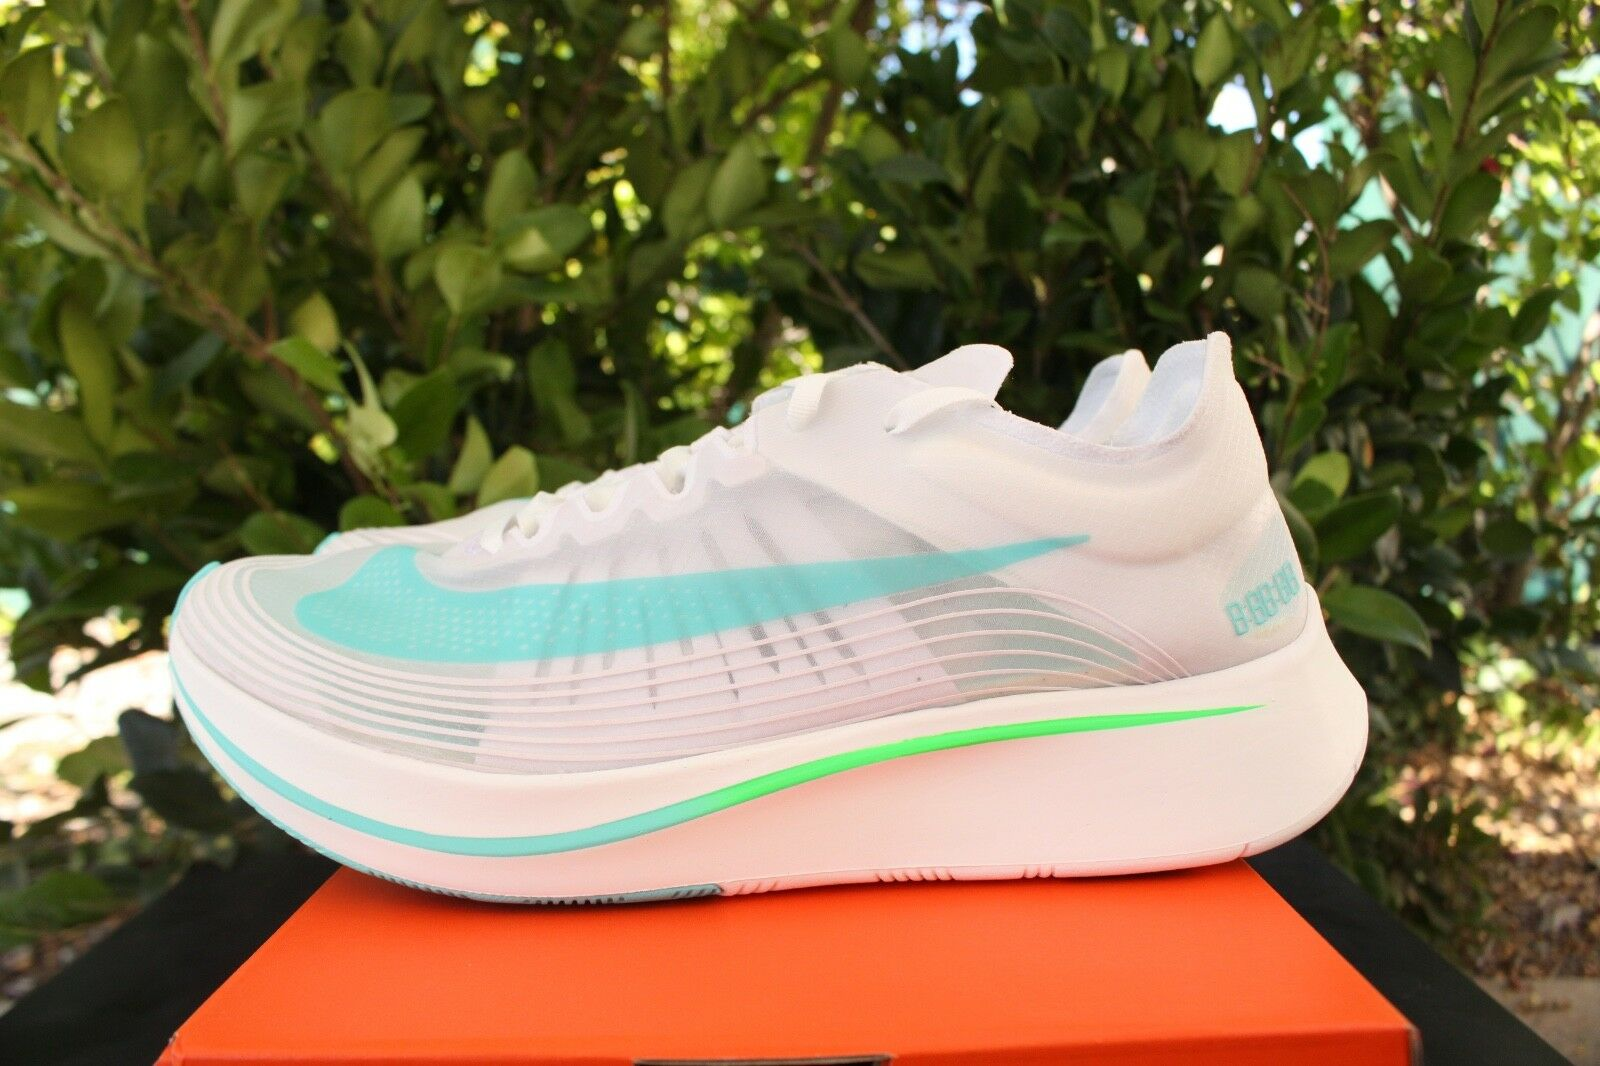 Nike zoom fly sp sz serie green aj9282 103 9 bianco